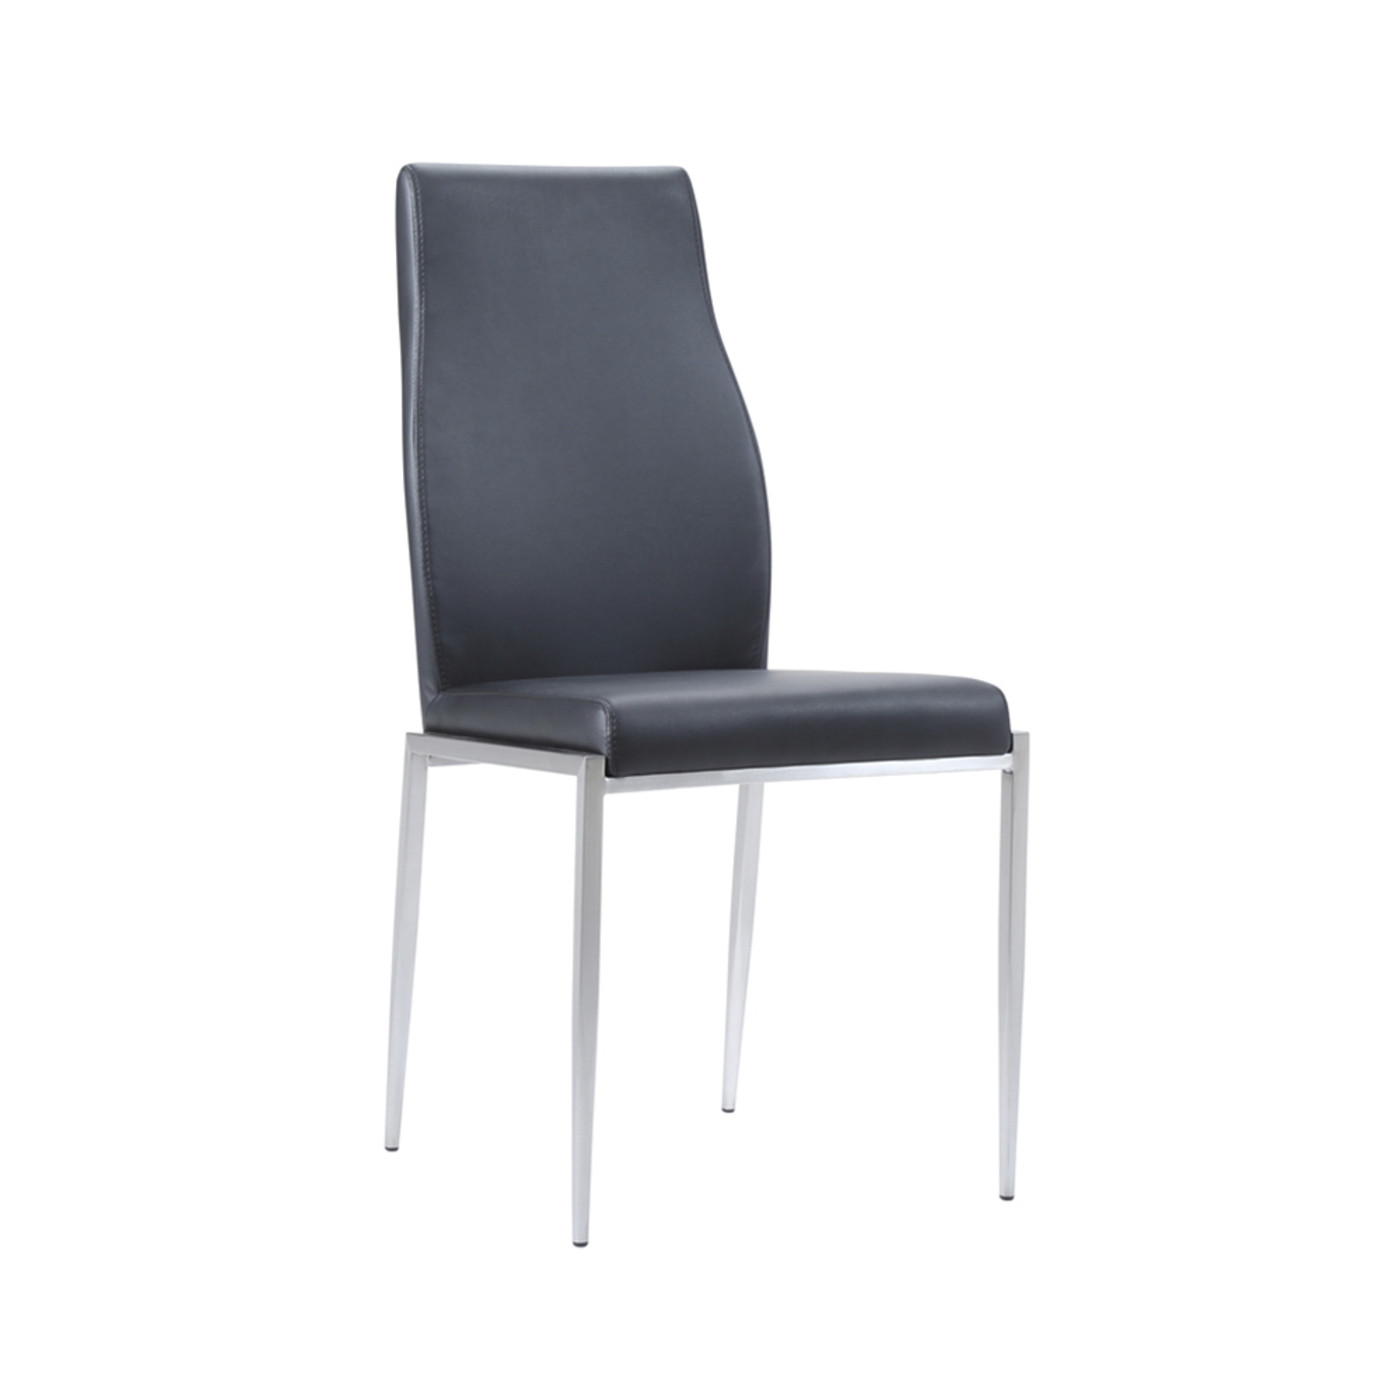 Awesome Milan Dining Chair Faux Leather Pk2 Sos Direct Home Creativecarmelina Interior Chair Design Creativecarmelinacom